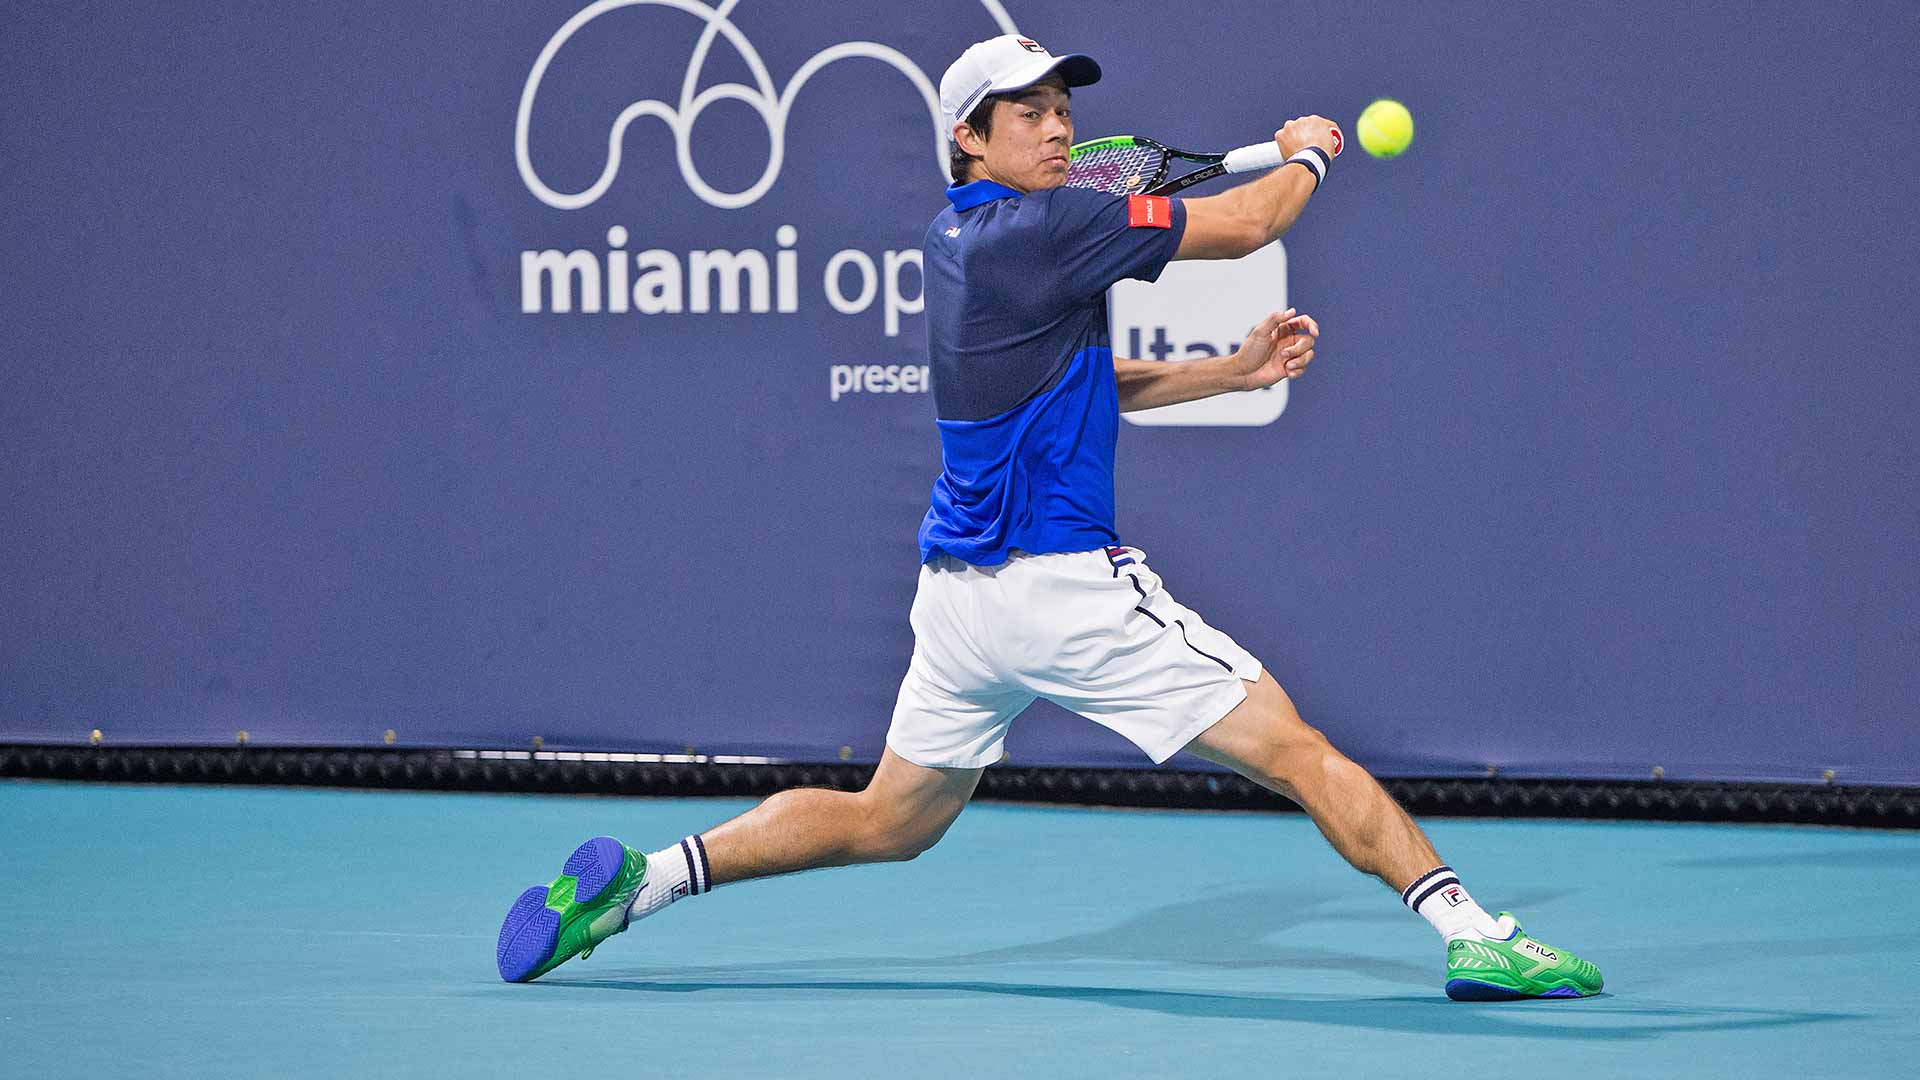 Mackenzie McDonald plays a backhand at the Miami Open.